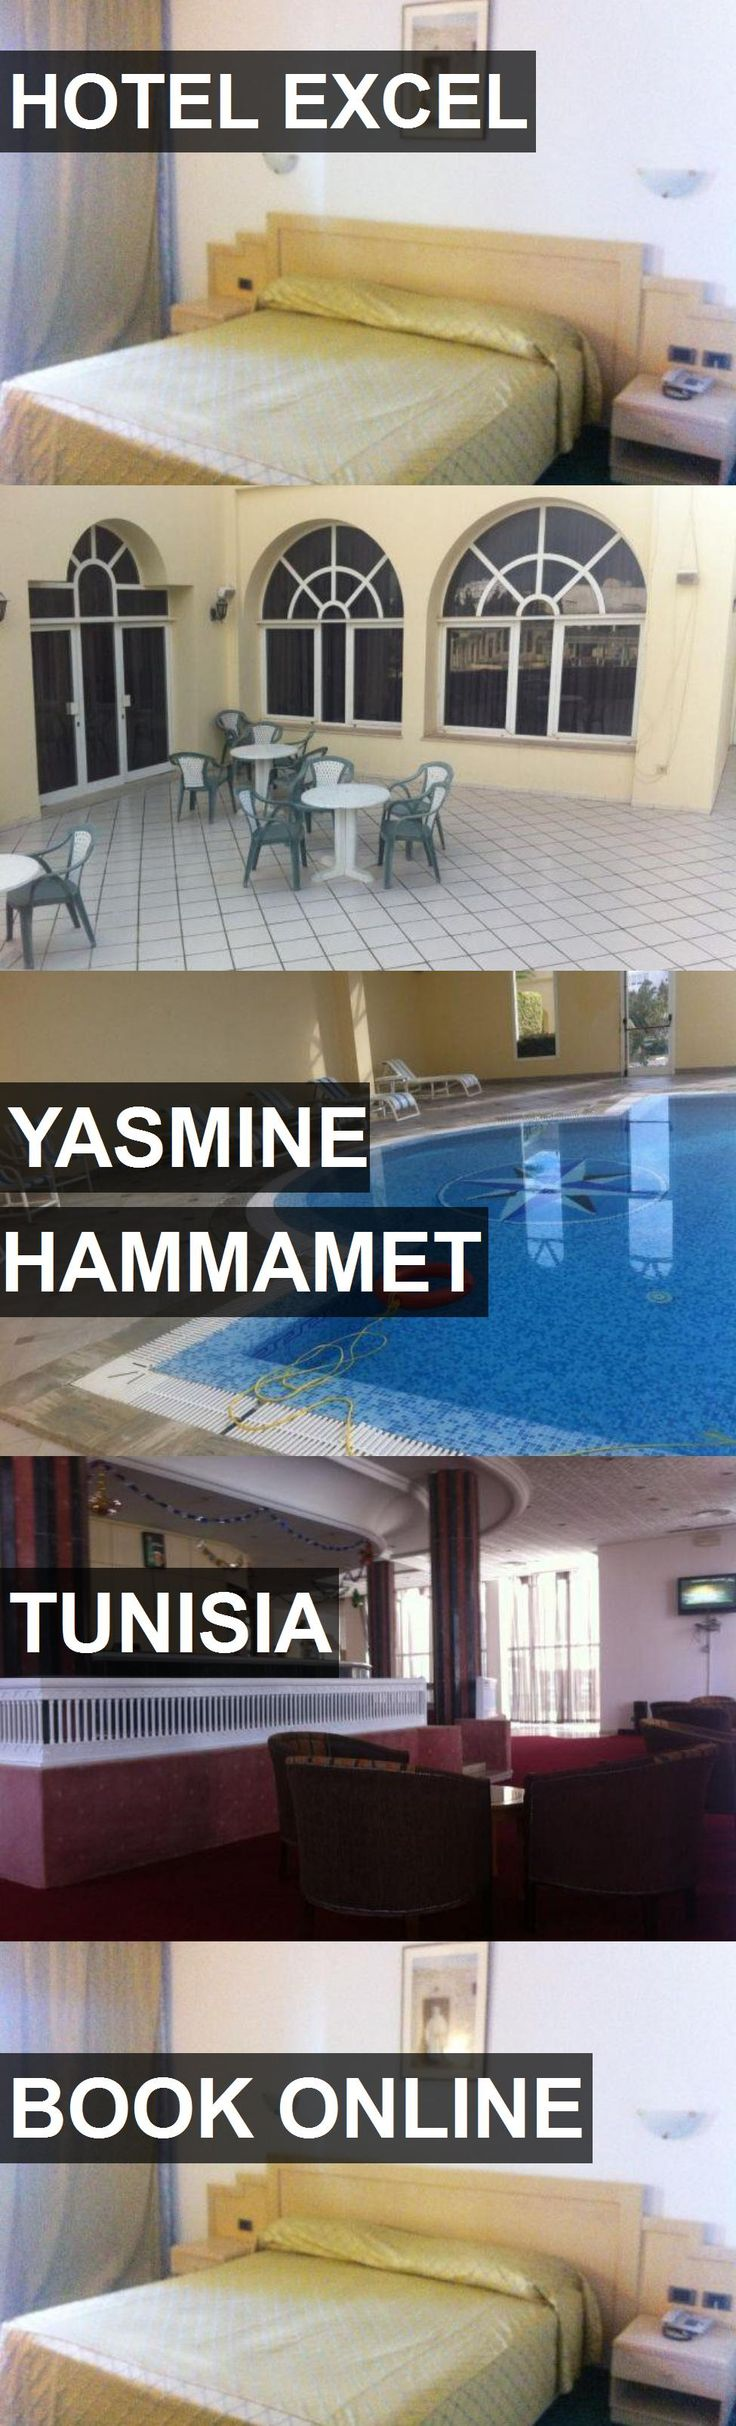 HOTEL EXCEL in Yasmine Hammamet, Tunisia. For more information, photos, reviews and best prices please follow the link. #Tunisia #YasmineHammamet #travel #vacation #hotel